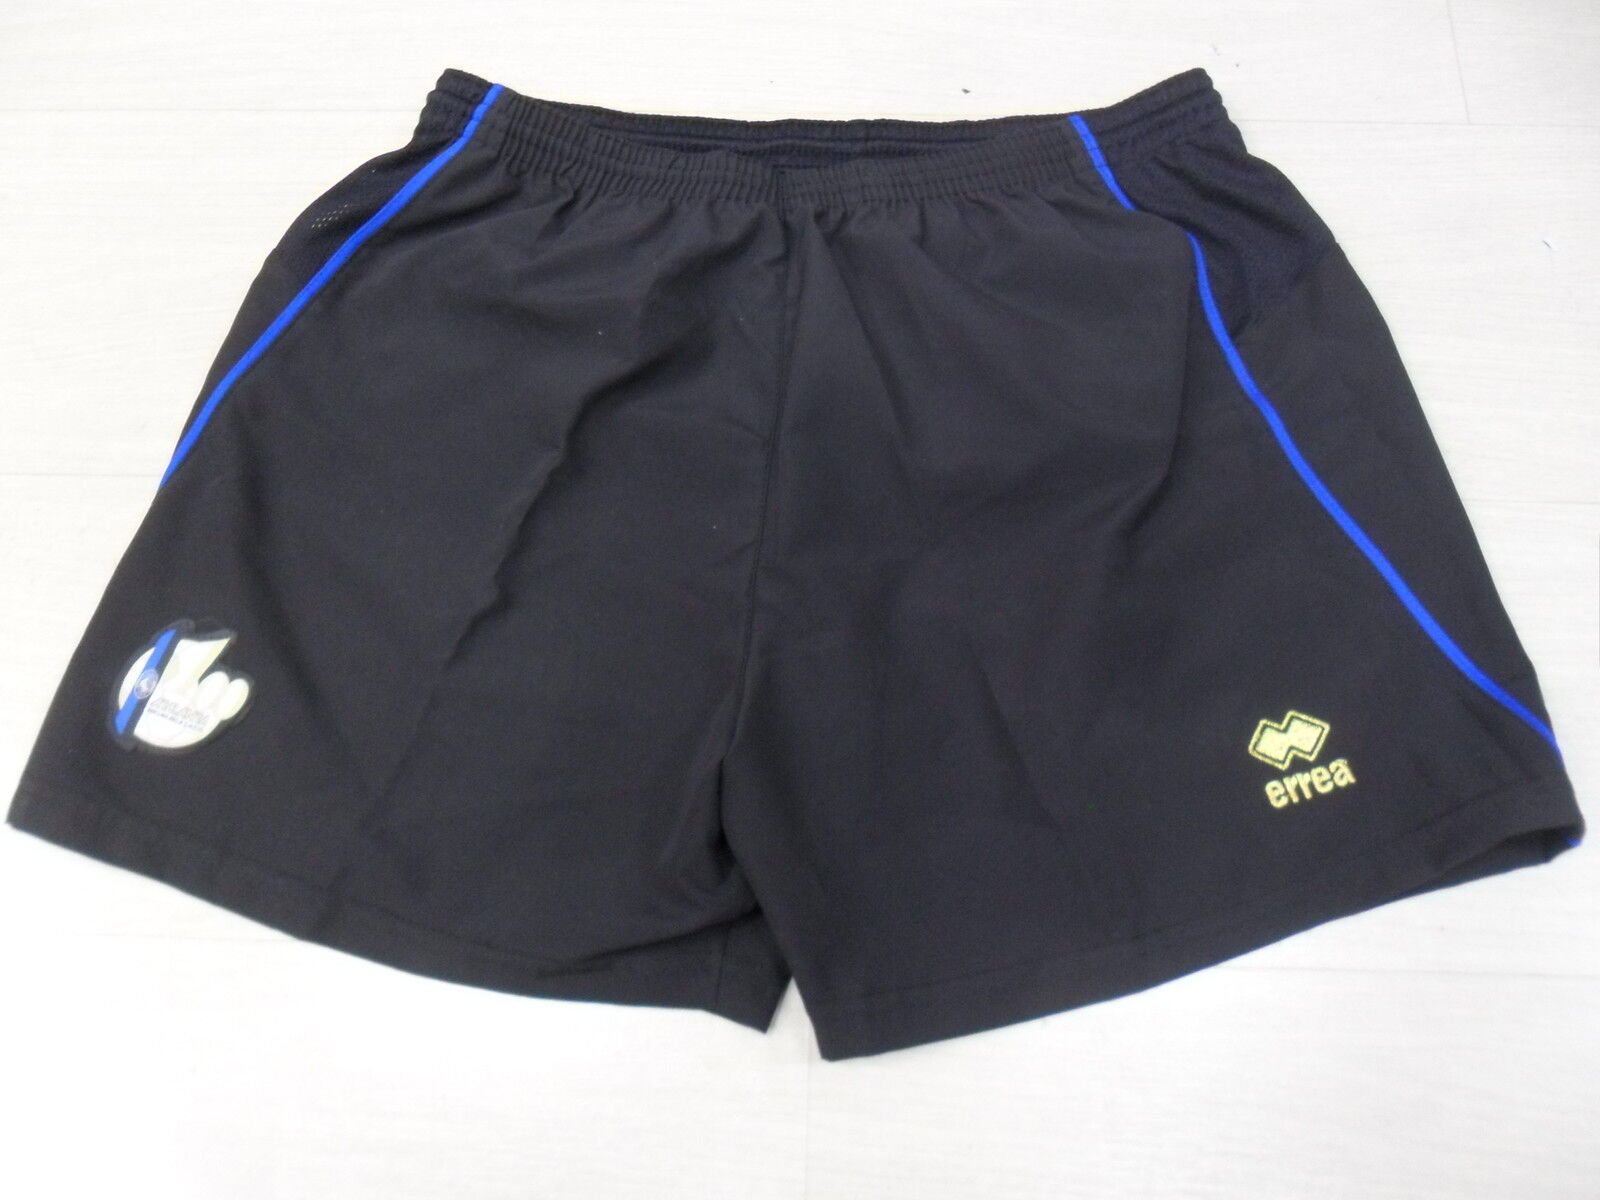 0033 SHORTS COMPETITION SIZE XXL ATALANTA CENTENARY OFFIZIELL SHORTS SHORTS